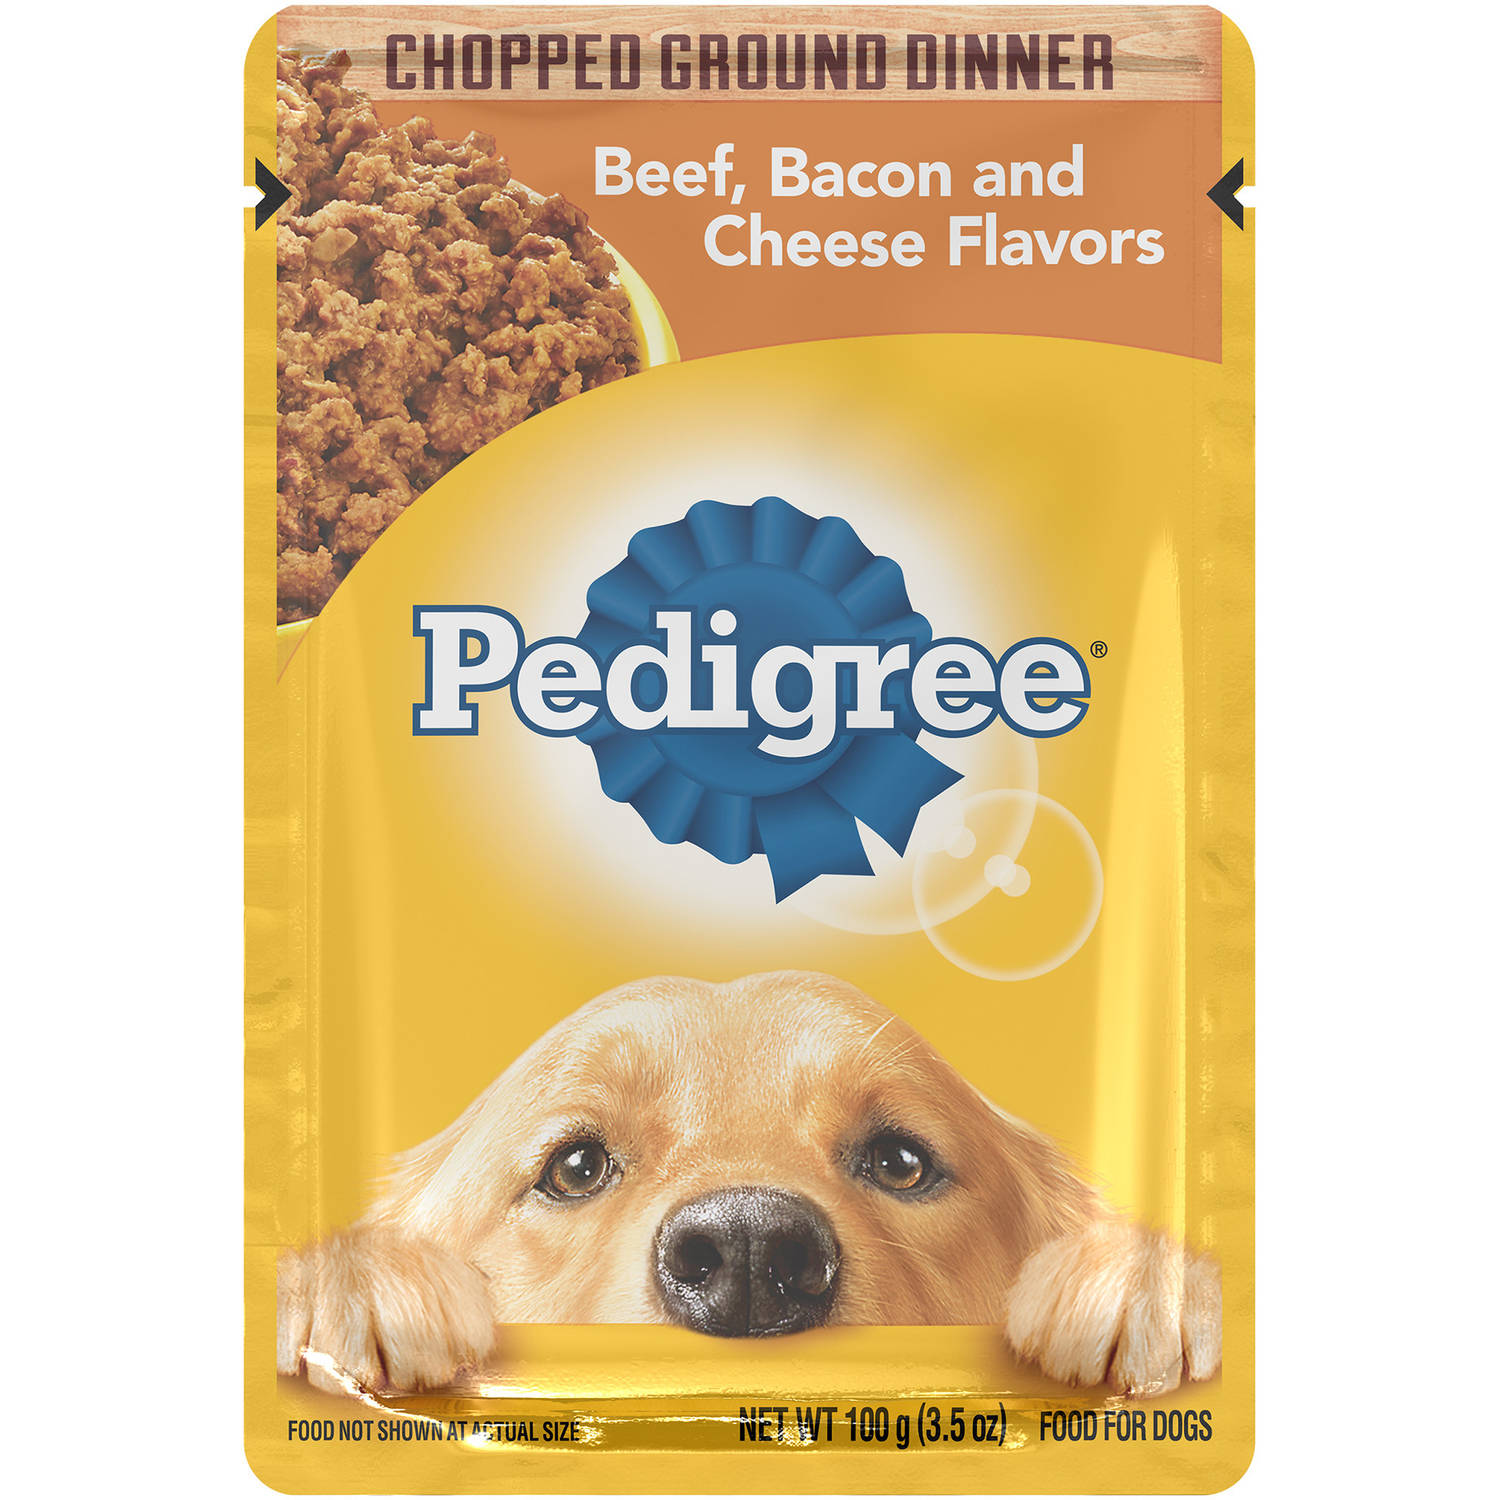 PEDIGREE Chopped Ground Dinner Beef, Bacon and Cheese Flavors Wet Dog Food, 3.5 Ounces